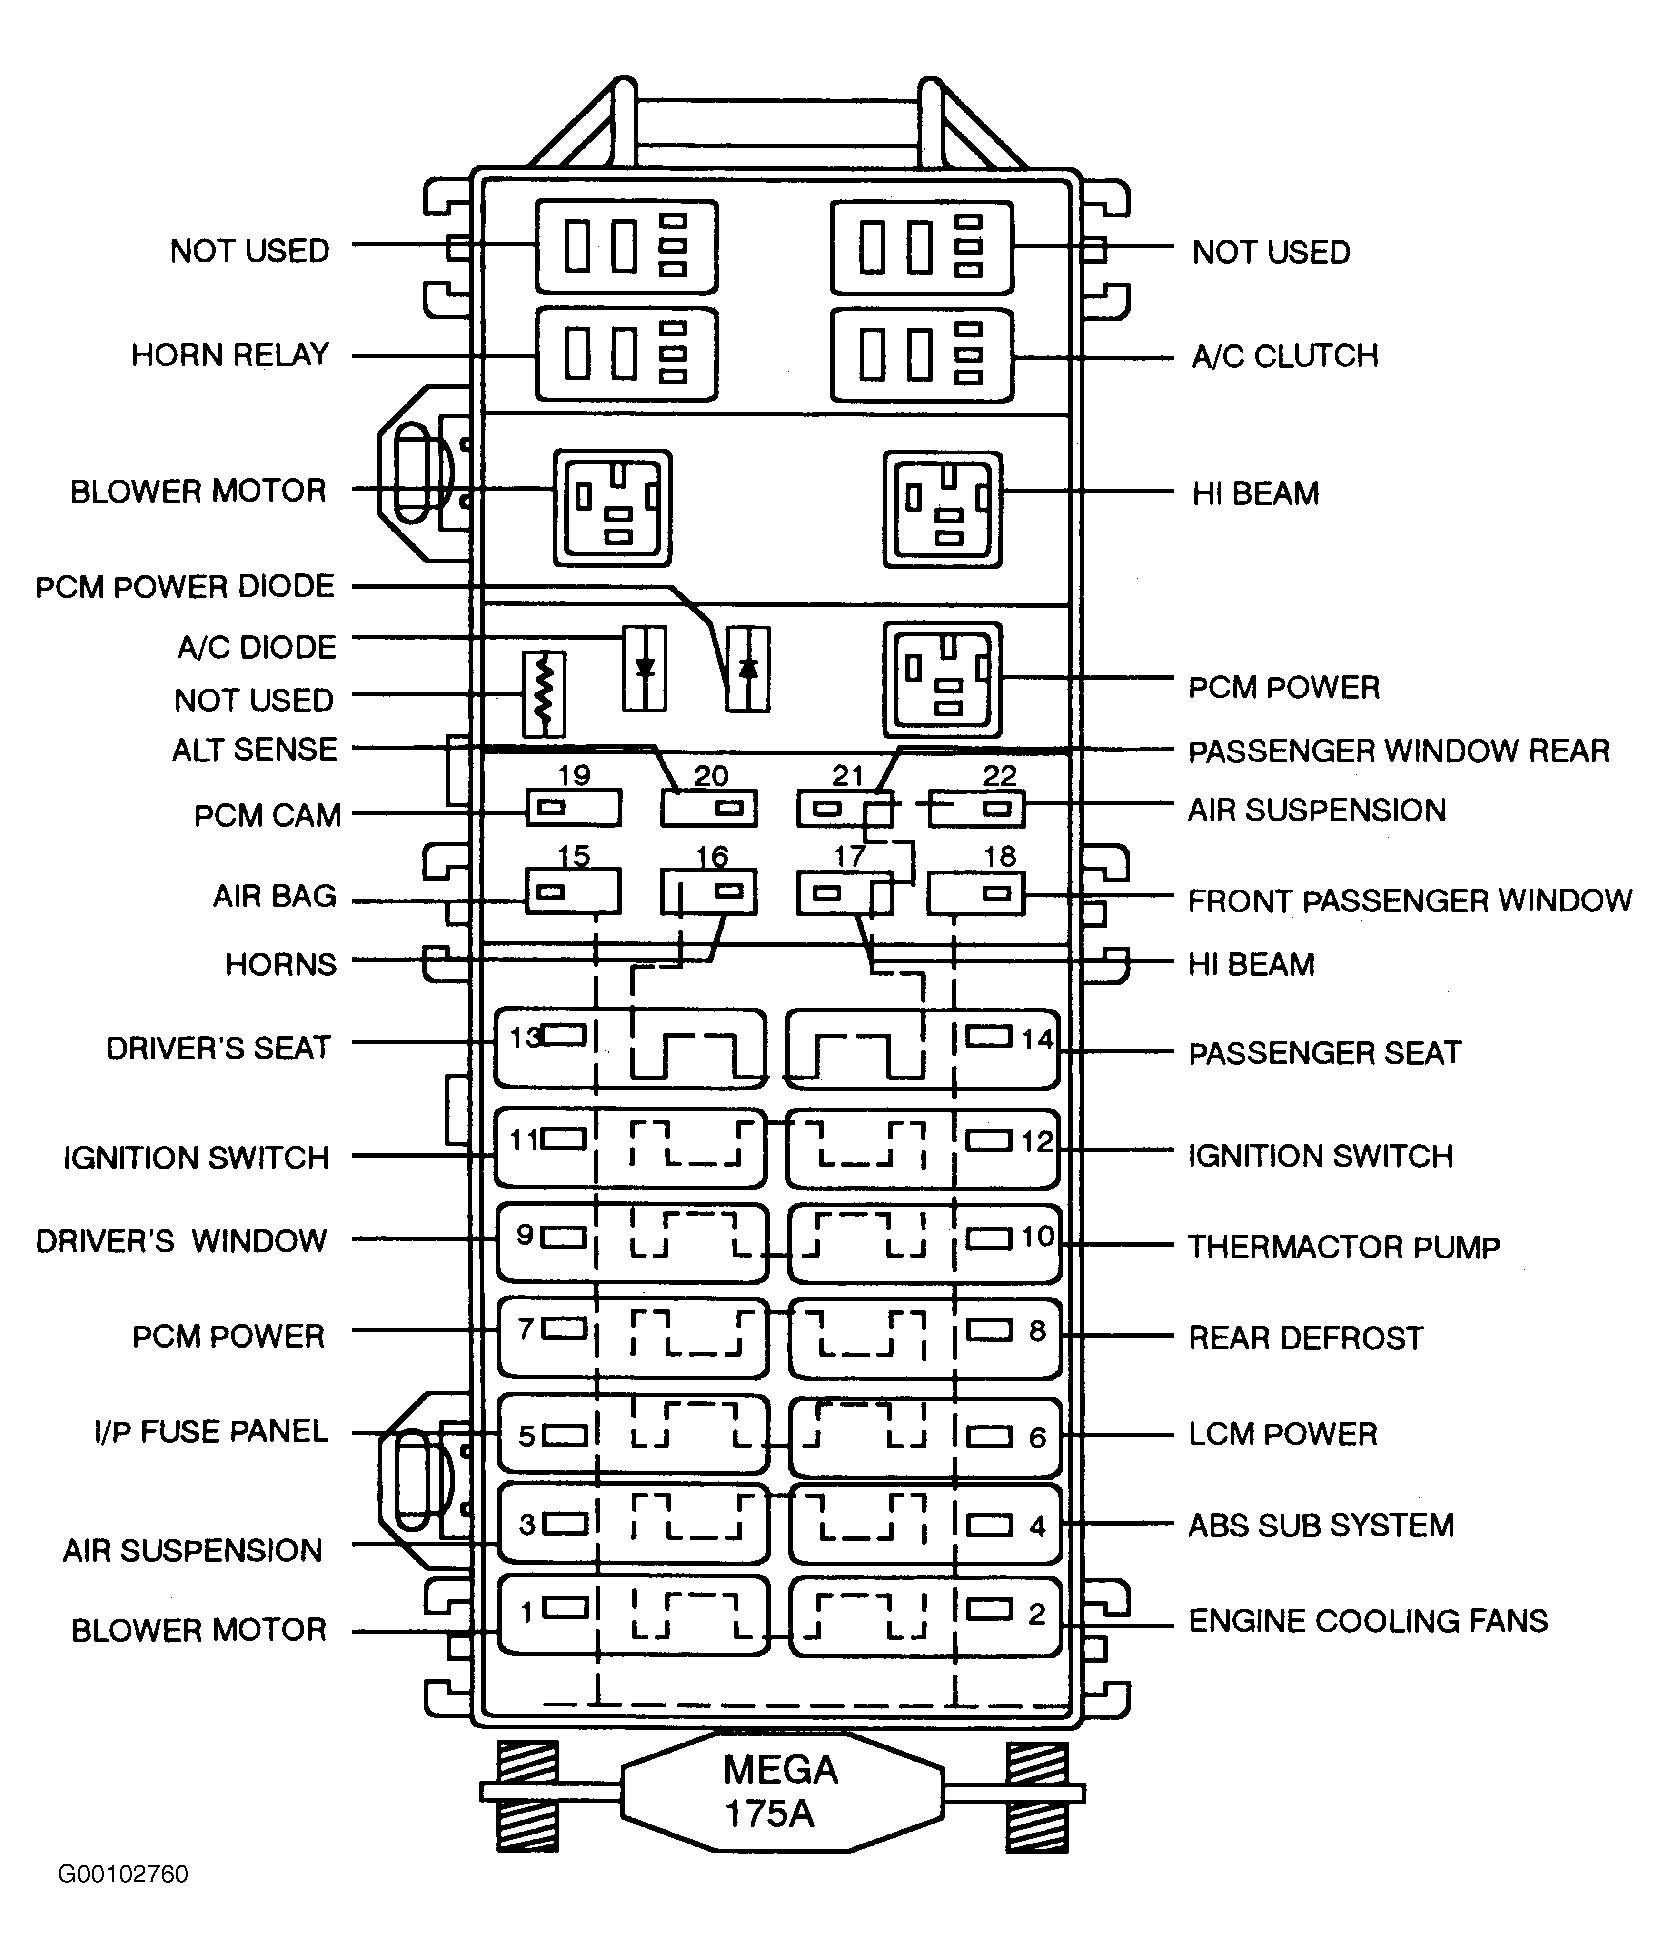 2002 Lincoln Continental Fuse Diagram - Wiring Diagram schematics on 1991 chrysler new yorker fuse box, 2002 chrysler concorde fuse box, 2002 chrysler pt cruiser fuse box, 1997 chrysler cirrus fuse box, 2005 chrysler town country fuse box, town and country fuse box, 2003 chrysler town country fuse box, 1993 chrysler new yorker fuse box, 2004 chrysler town country fuse box,